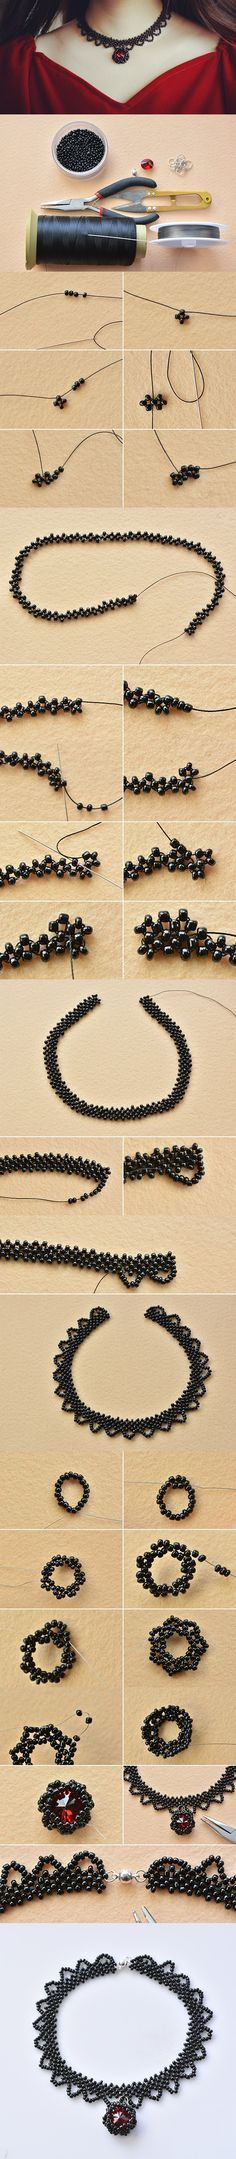 Handmade Vintage Black Seed Bead Choker Necklace #chokernecklace #seedbeadsnecklace #pandahall PandaHall Promotion: use coupon code MayPINEN10OFF for 10% off for your orders, valid time from May 18 to May 31.